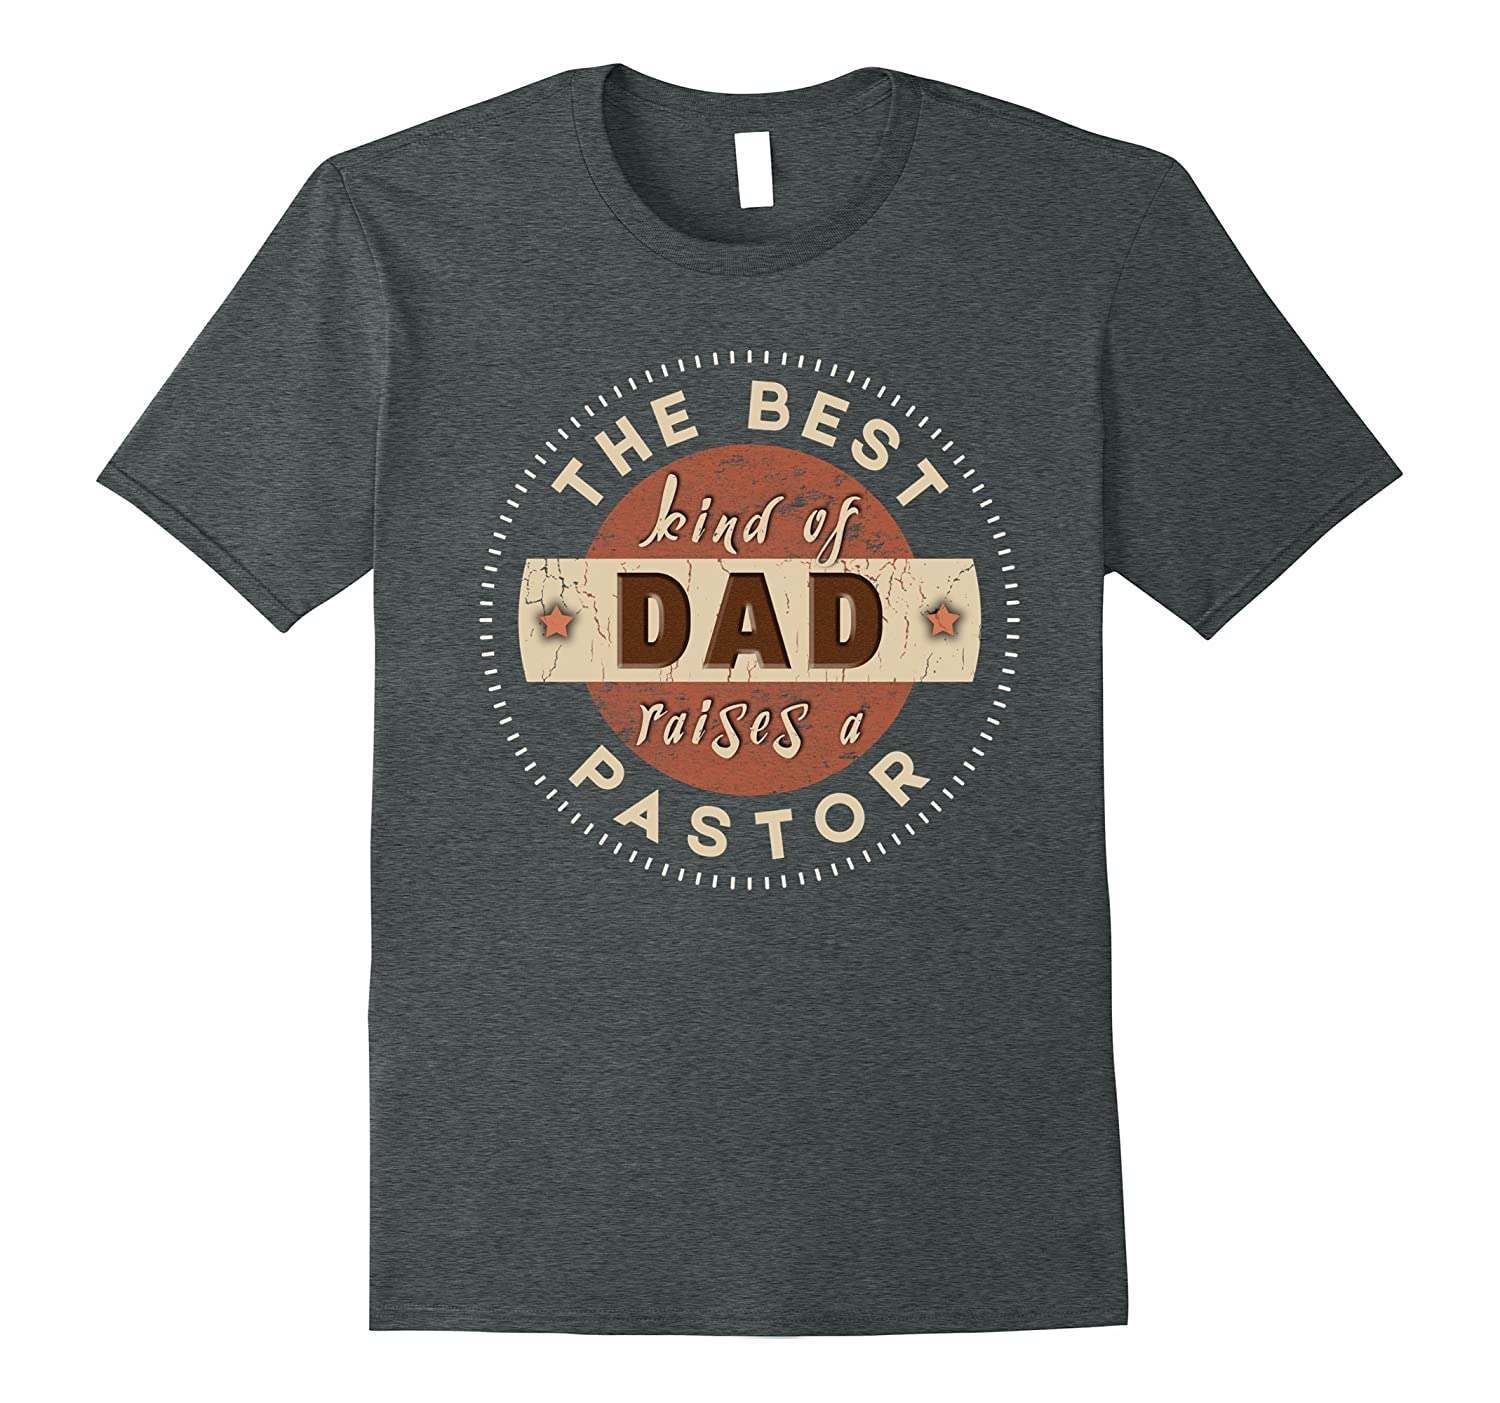 The Best Kind of Dad Raises a Pastor – Fathers Day T-Shirt